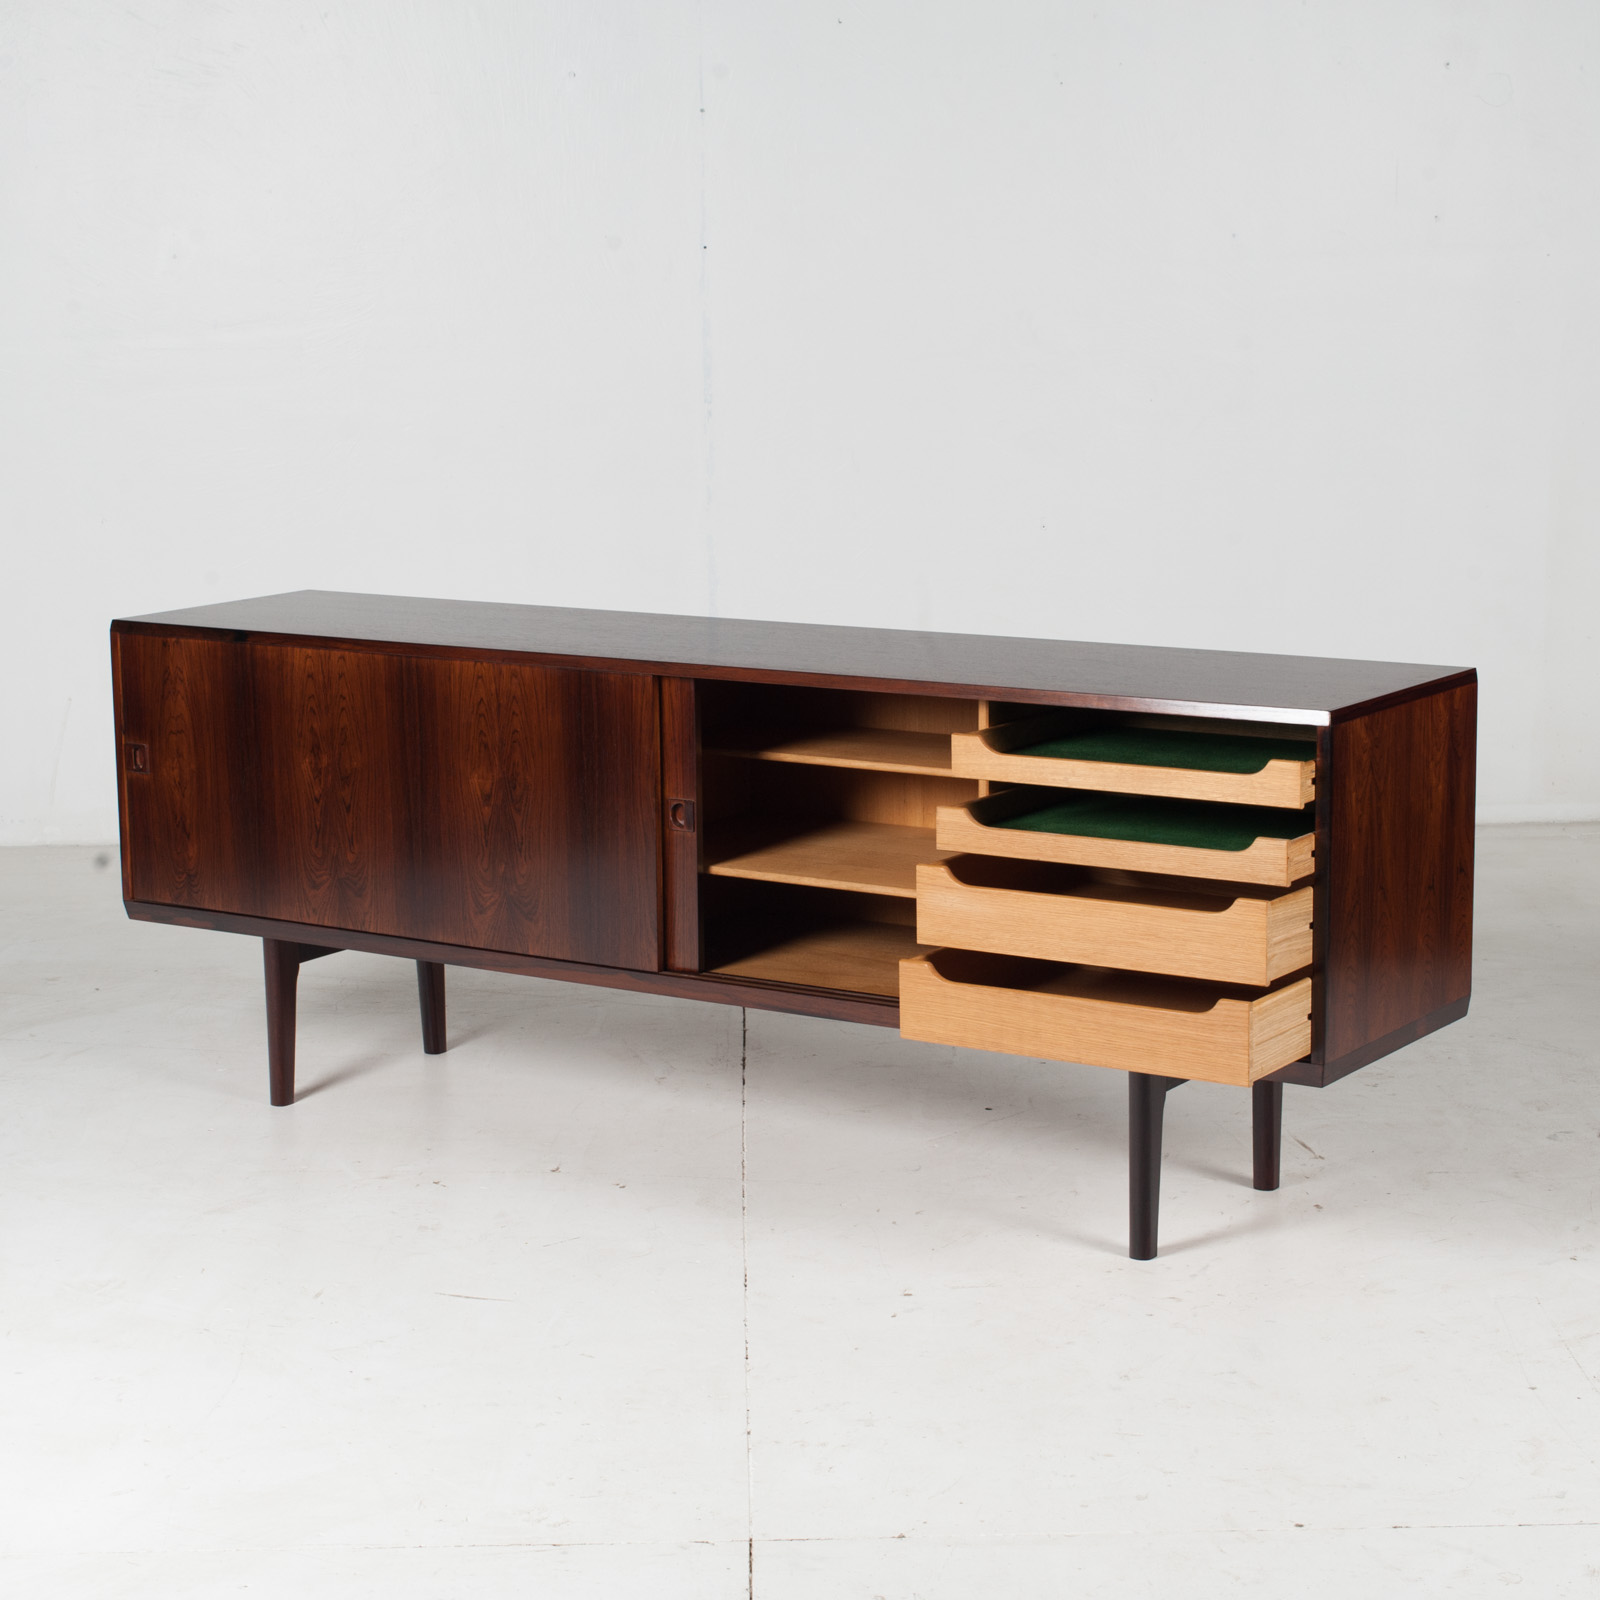 Sideboard In Rosewood With Oak Interior For Brouer Furniture, 1960s, Denmark5